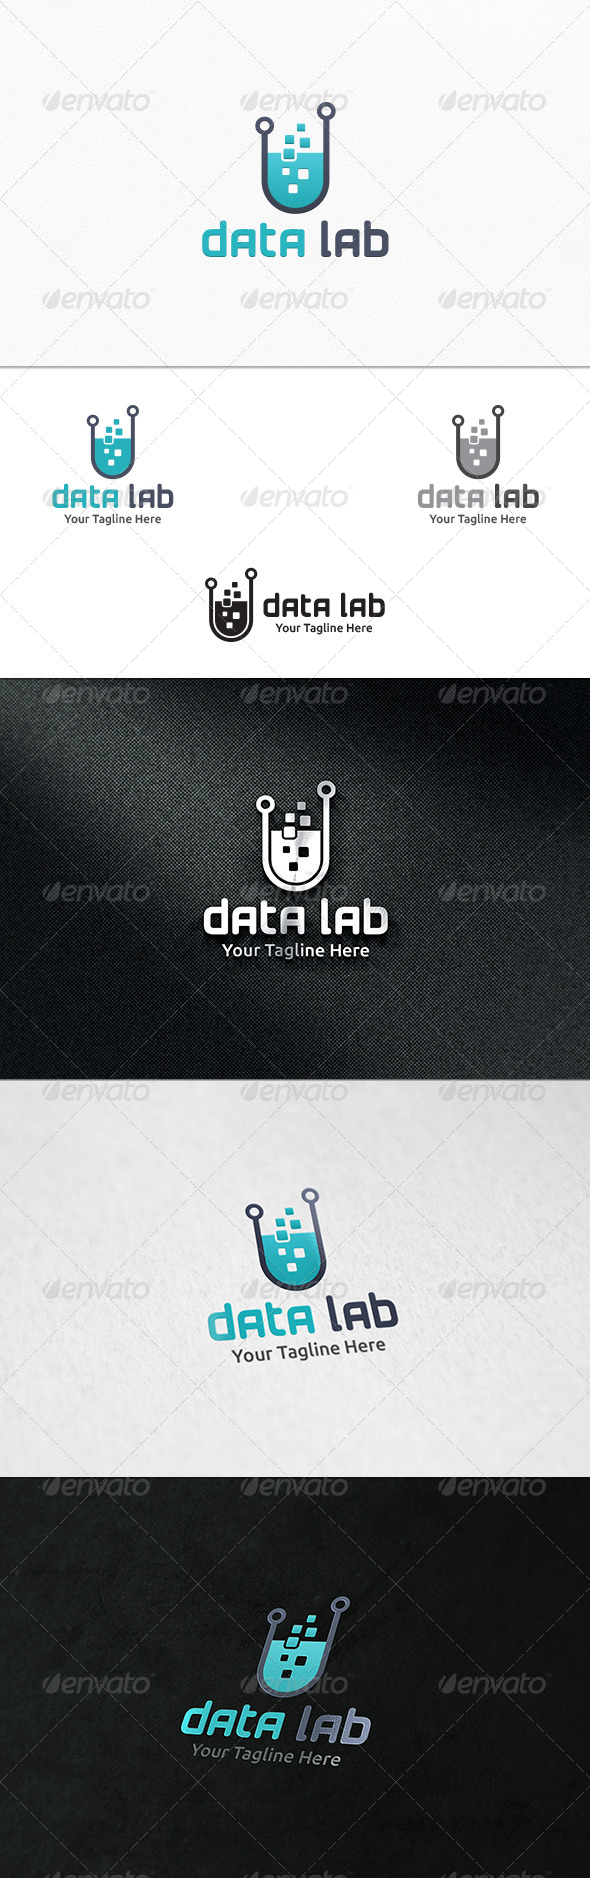 GraphicRiver Data Lab Logo Template 7696075